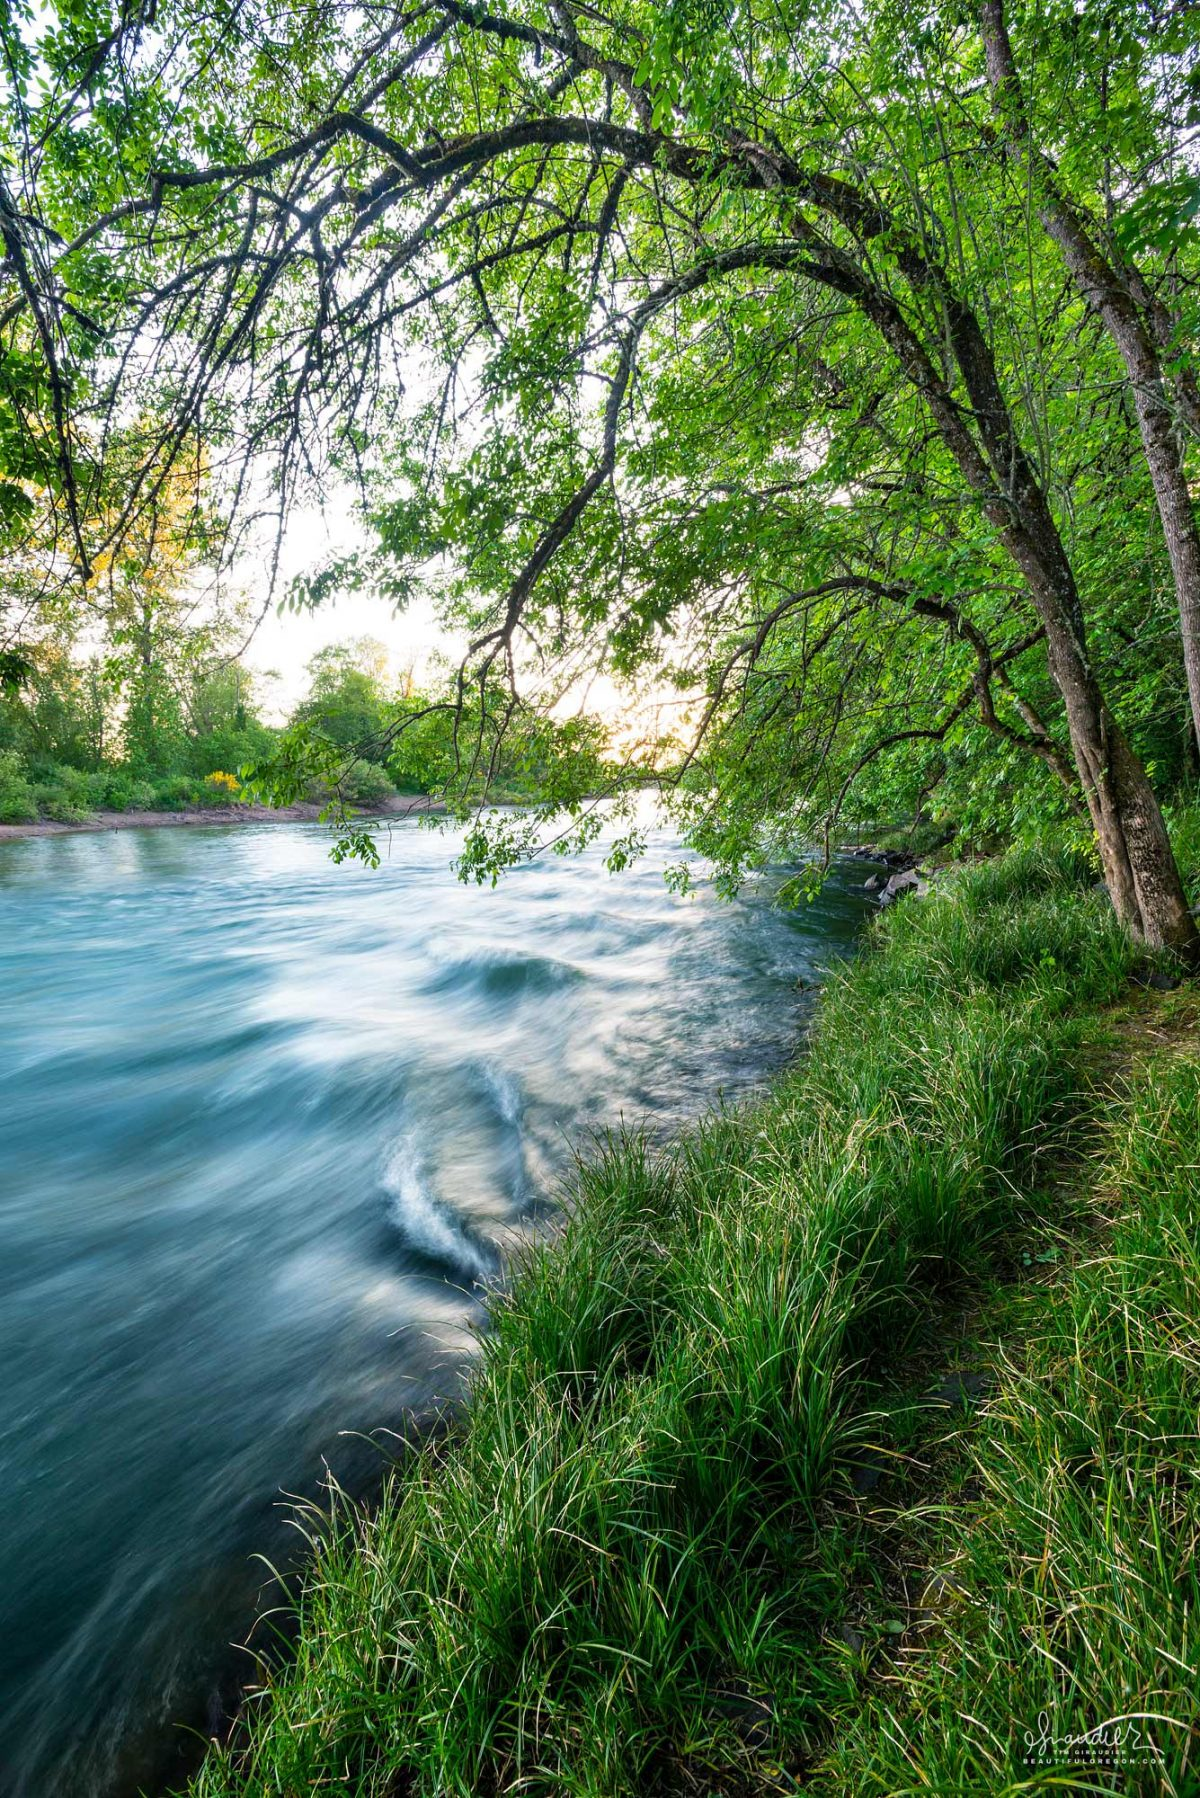 The Willamette River flows through Alton Baker Park and the town of Eugene Oregon. Lane County, south Willamette Valley landscape photography.